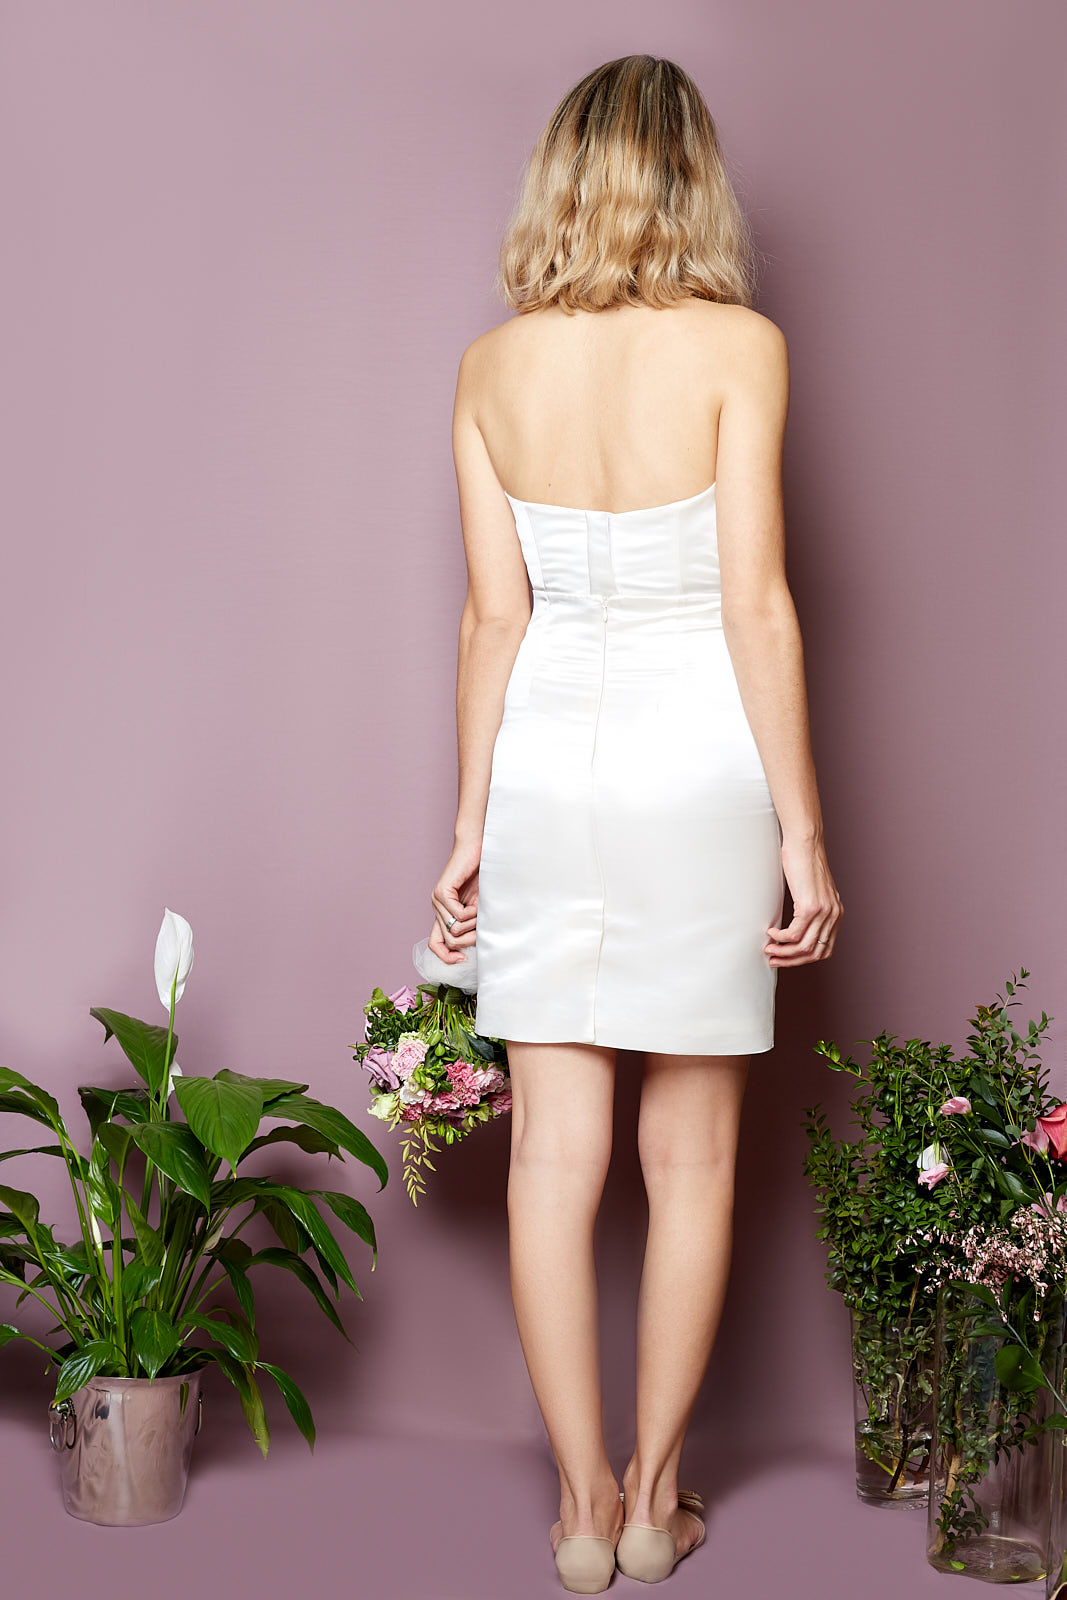 ALBA Bustier & Pencil Skirt  Bustier & Pencil Skirt in Duchesse Satin, lined in Silky Viscose